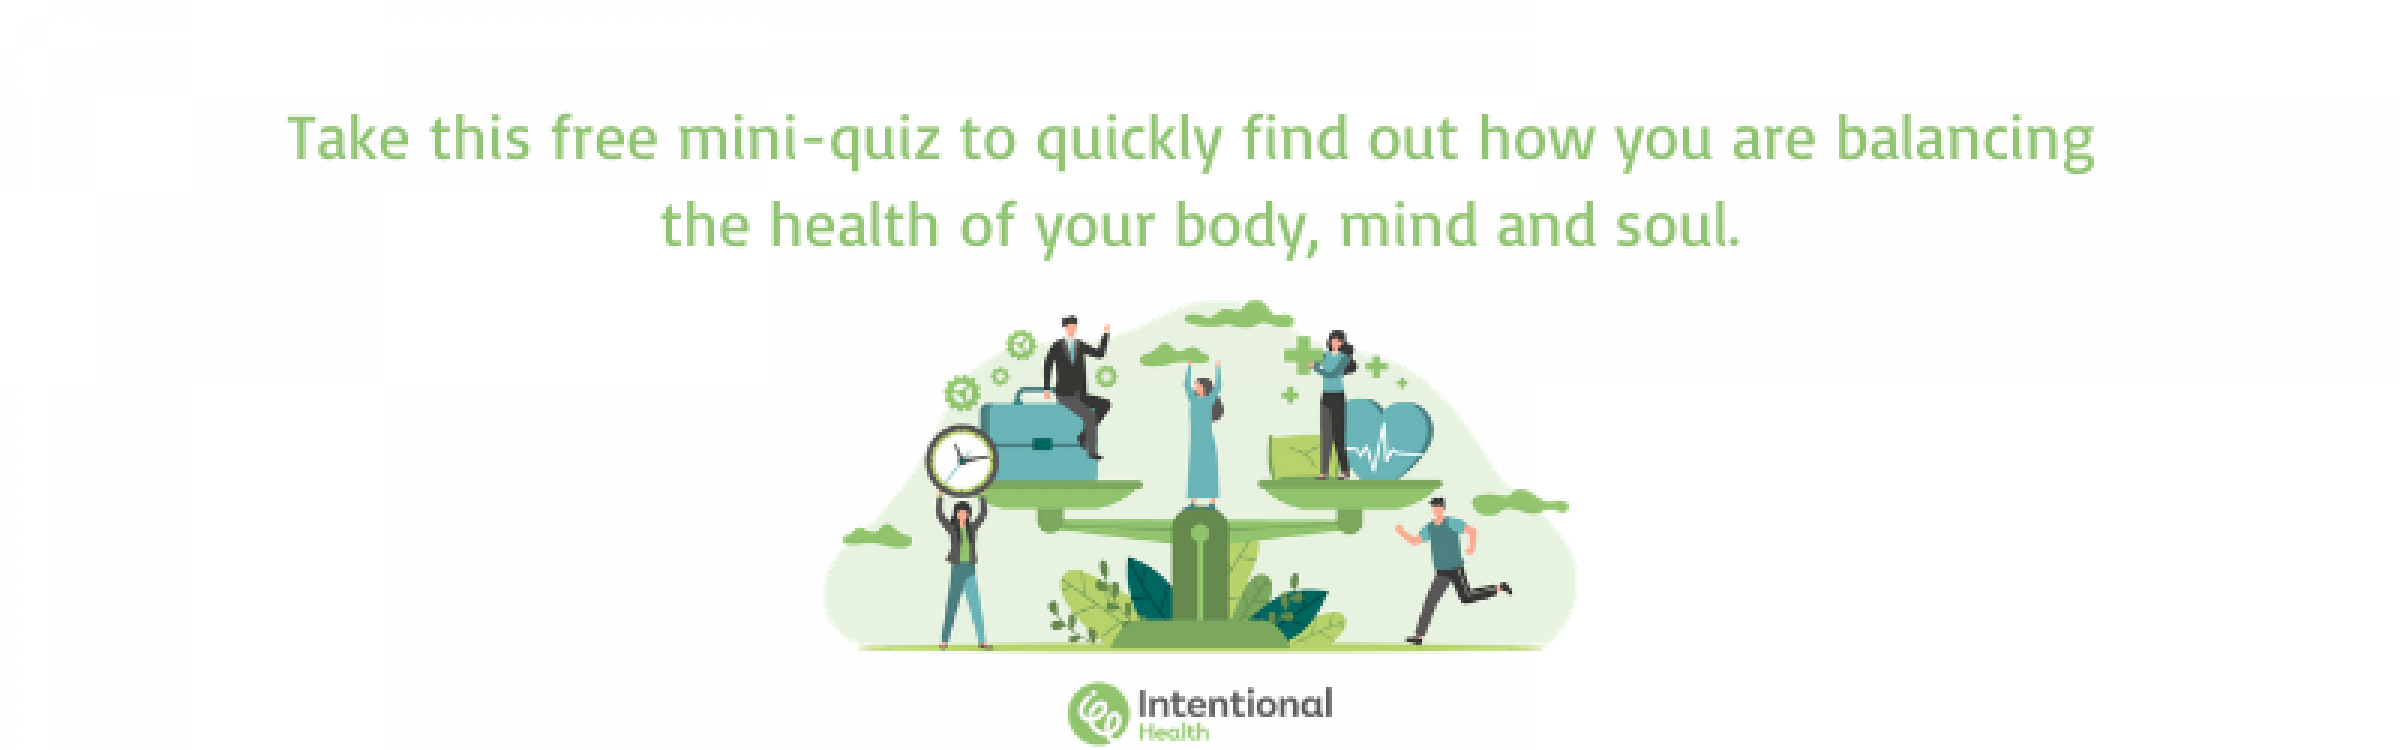 Health and Wellbeing Free Quiz